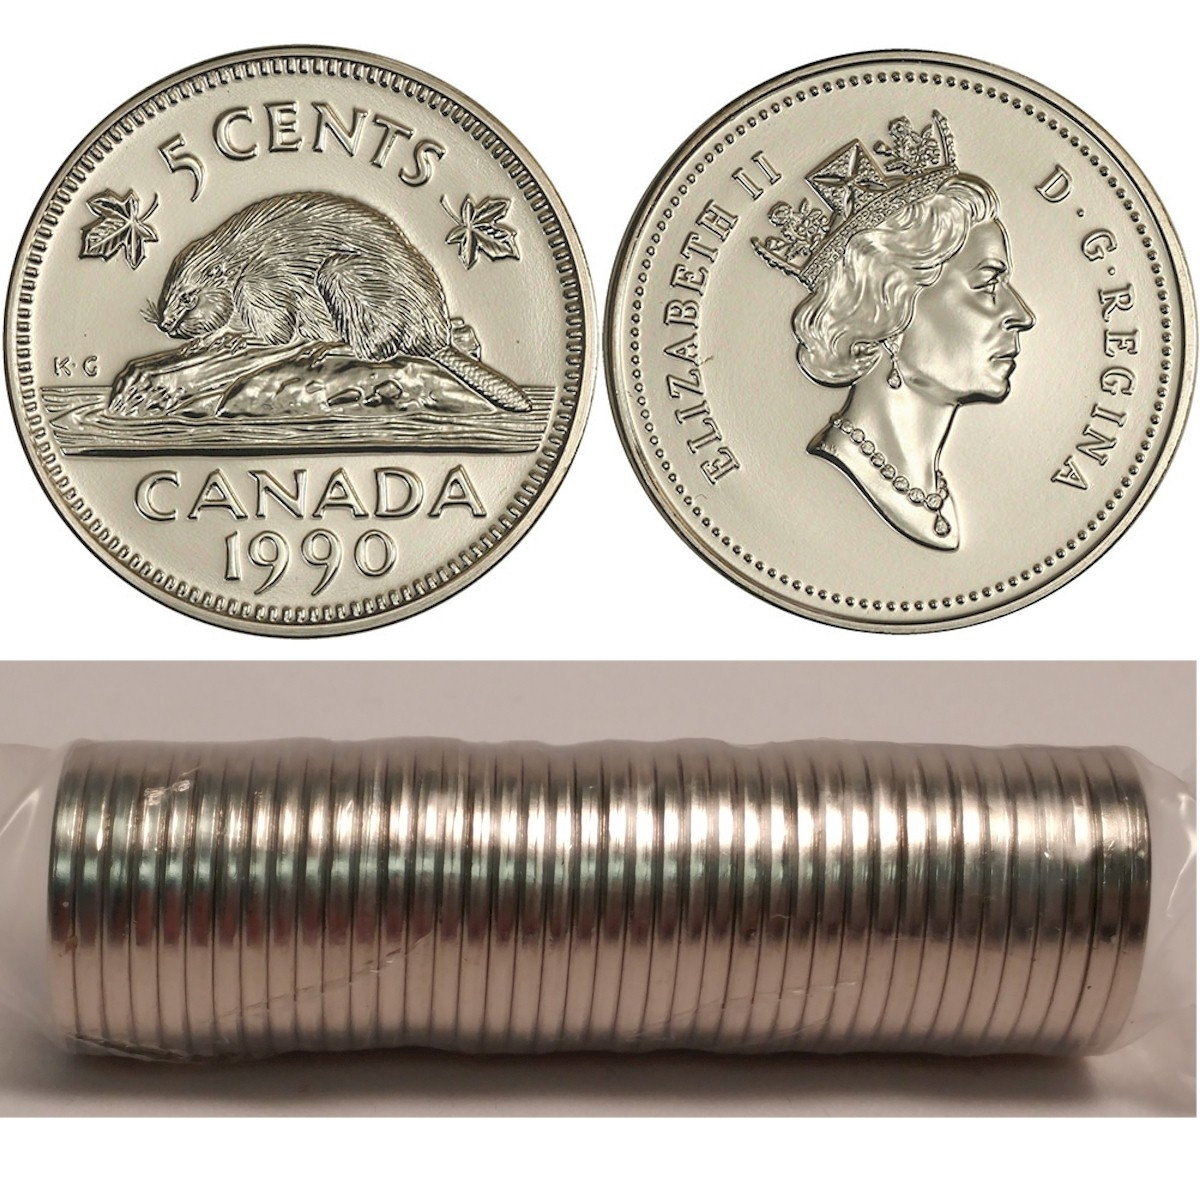 Canada 1992 Original Mint Wrapped Roll of Fifty Pennies!!